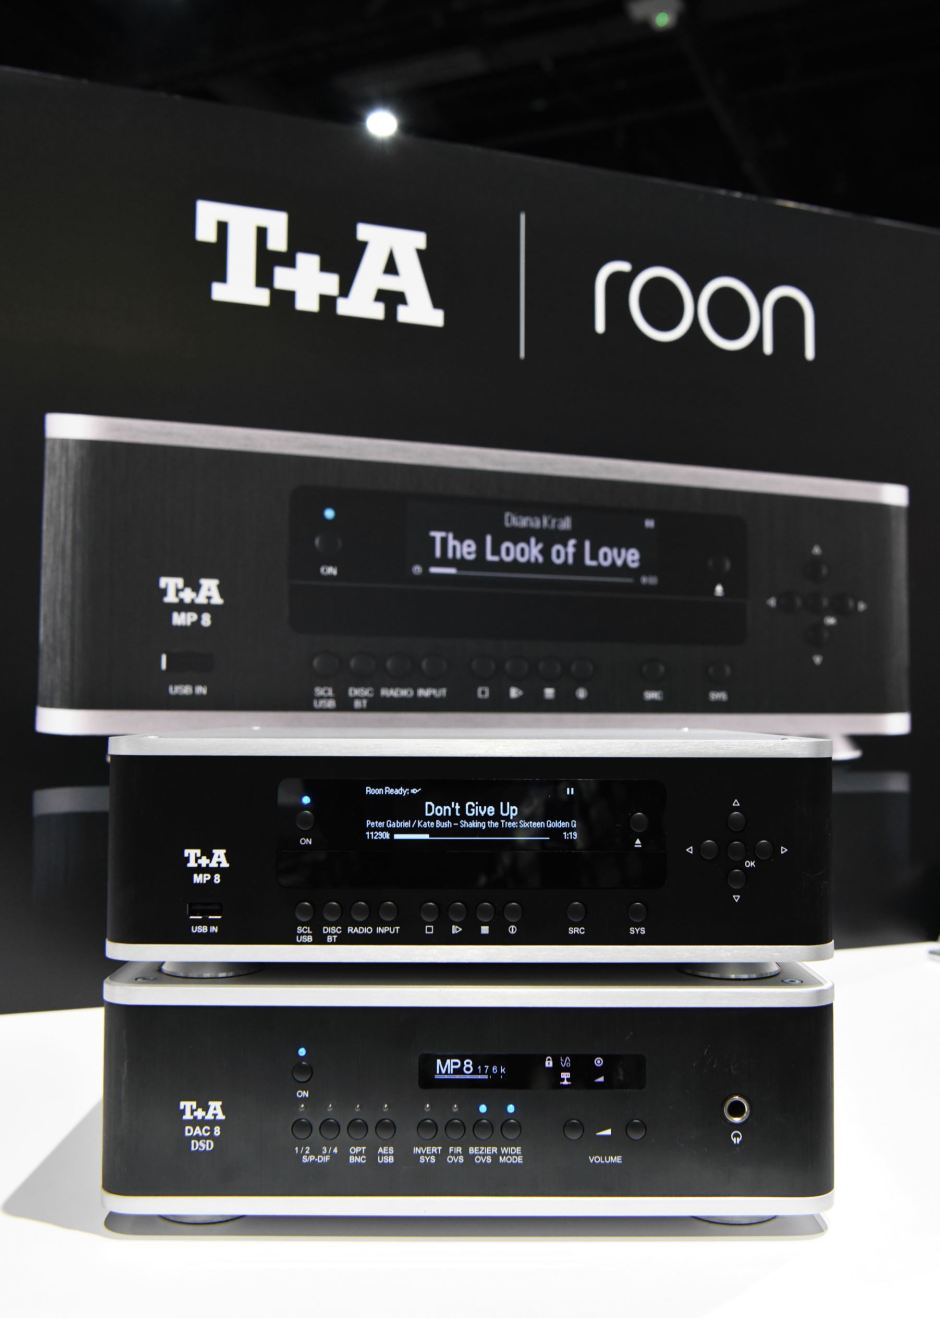 CEDIA 2018: T+A Series 8 brings Roon and MQA | Part-Time